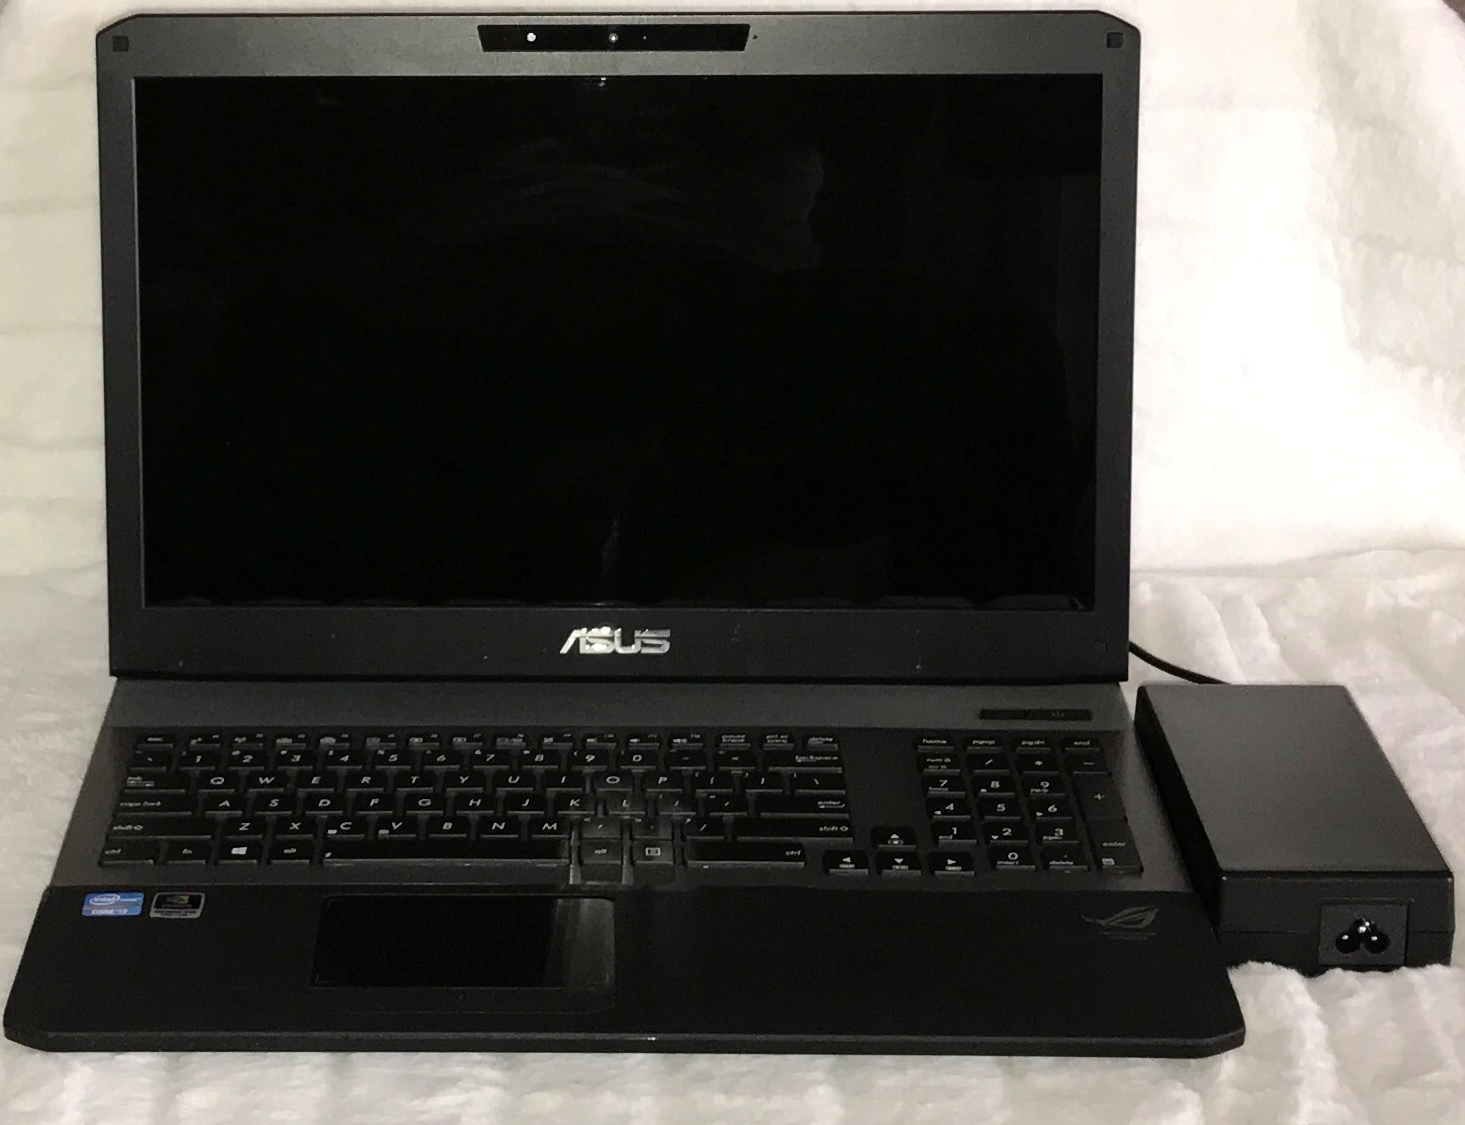 $430.00 - ASUS ROG G75V Gaming 1TB 16GB RAM Core i7 3630QM 2.4GHz Win7 Pro 1920x1080 #16